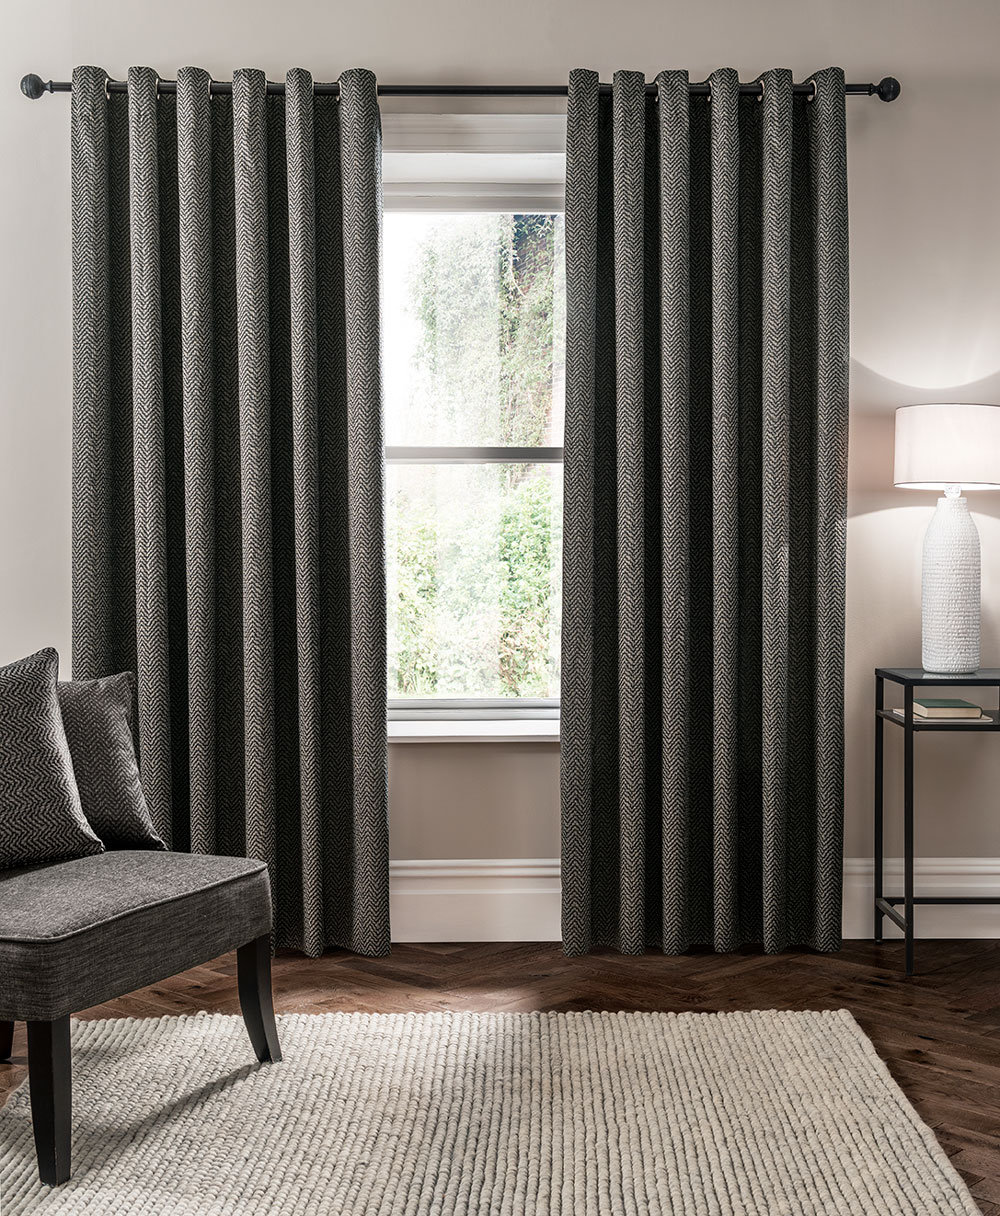 Studio G Verona Eyelet Curtains Charcoal Ready Made Curtains - Product code: M1102/01/46X5